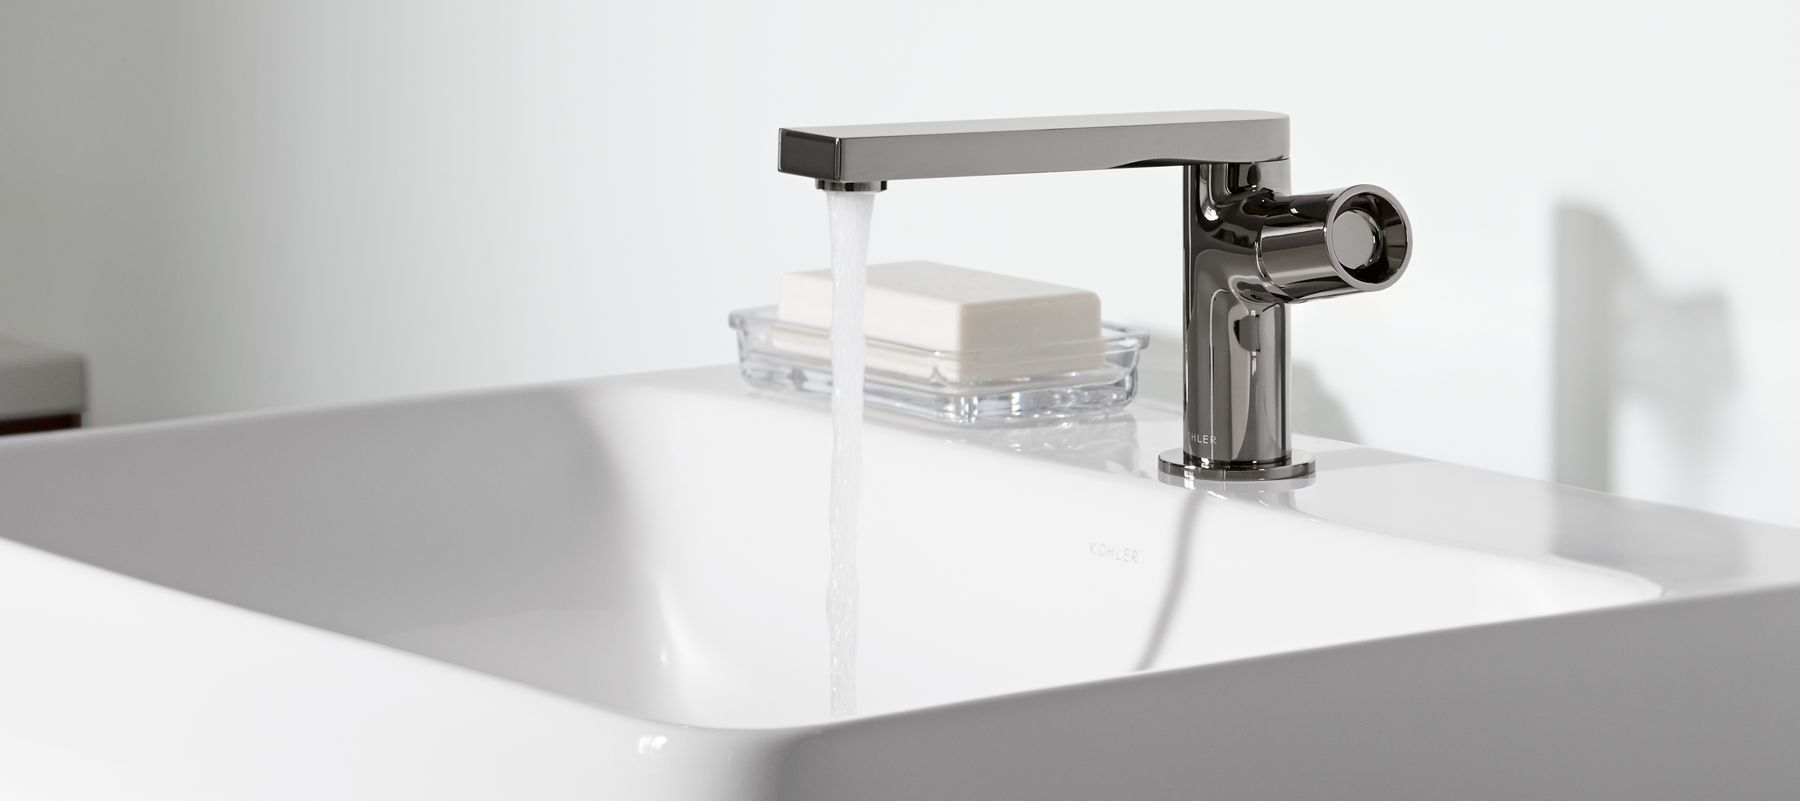 Bathroom Sinks Faucets bathroom sink faucets | bathroom faucets | bathroom | kohler